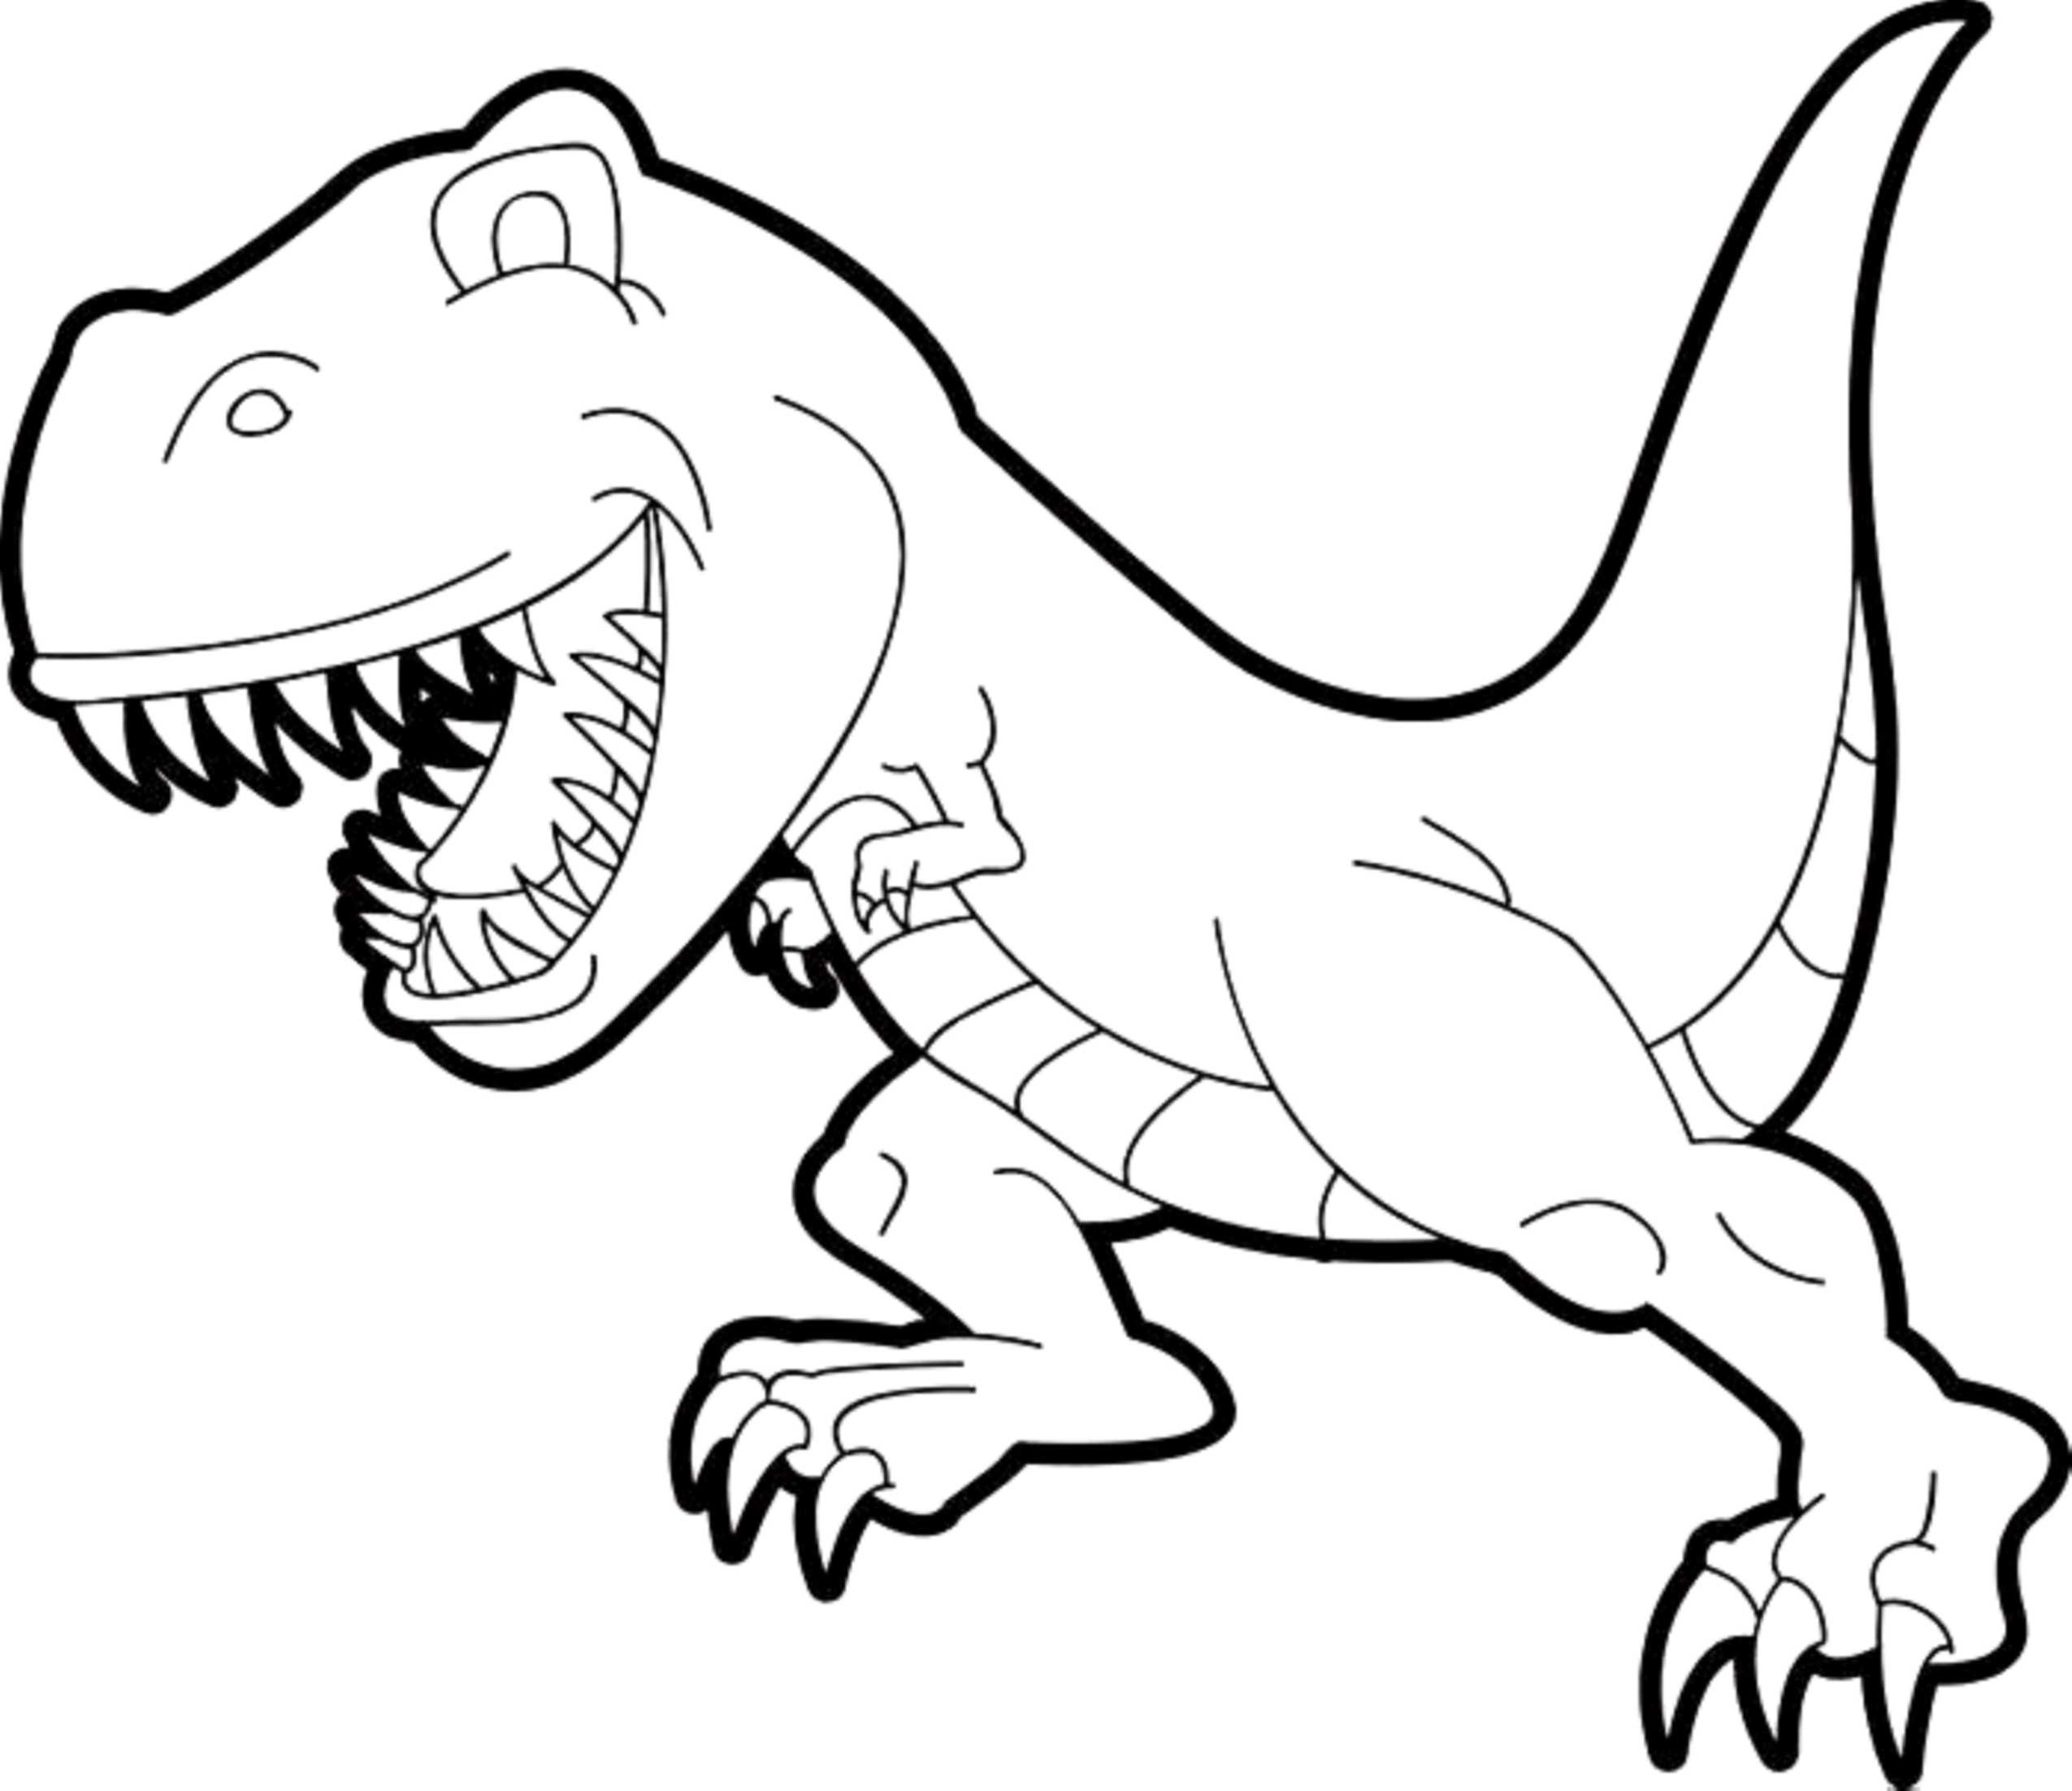 dinosaurs coloring pages printable dinosaur coloring pages to download and print for free pages dinosaurs coloring printable